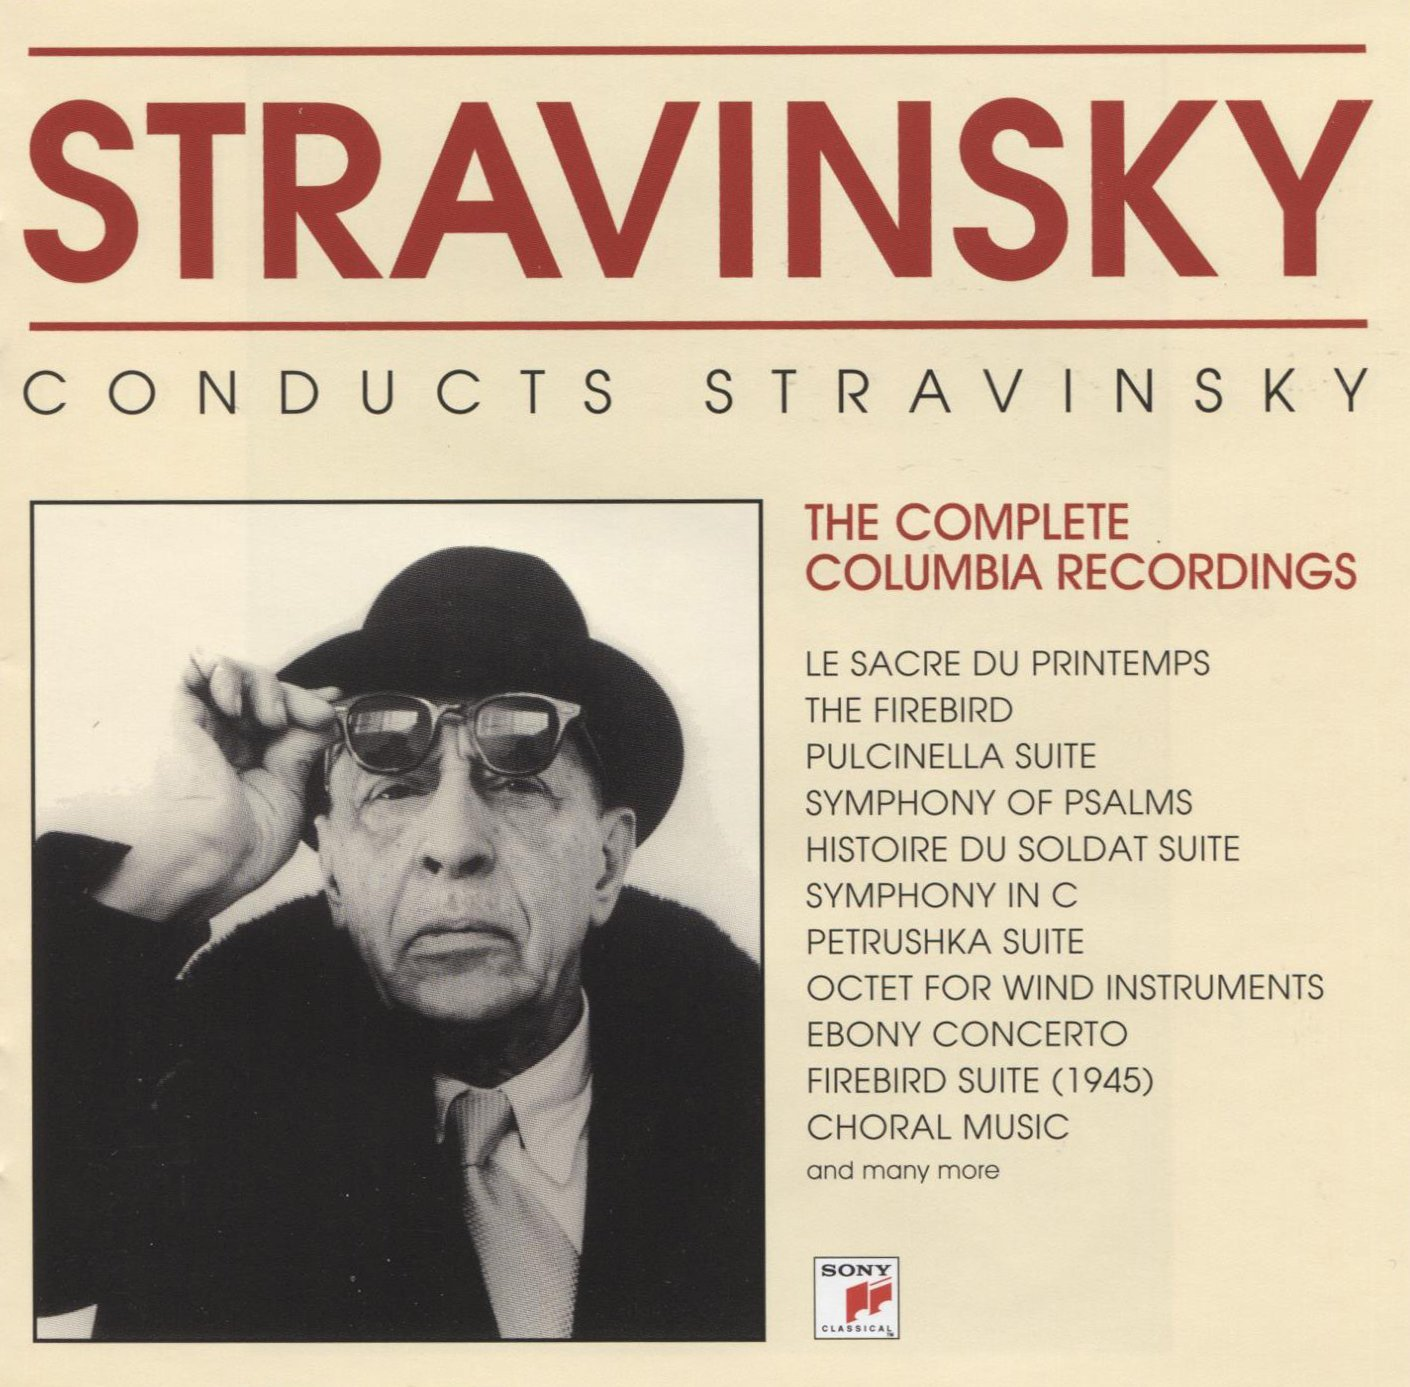 Buy Stravinsky Conducts Stravinsky Online At Low Prices In India